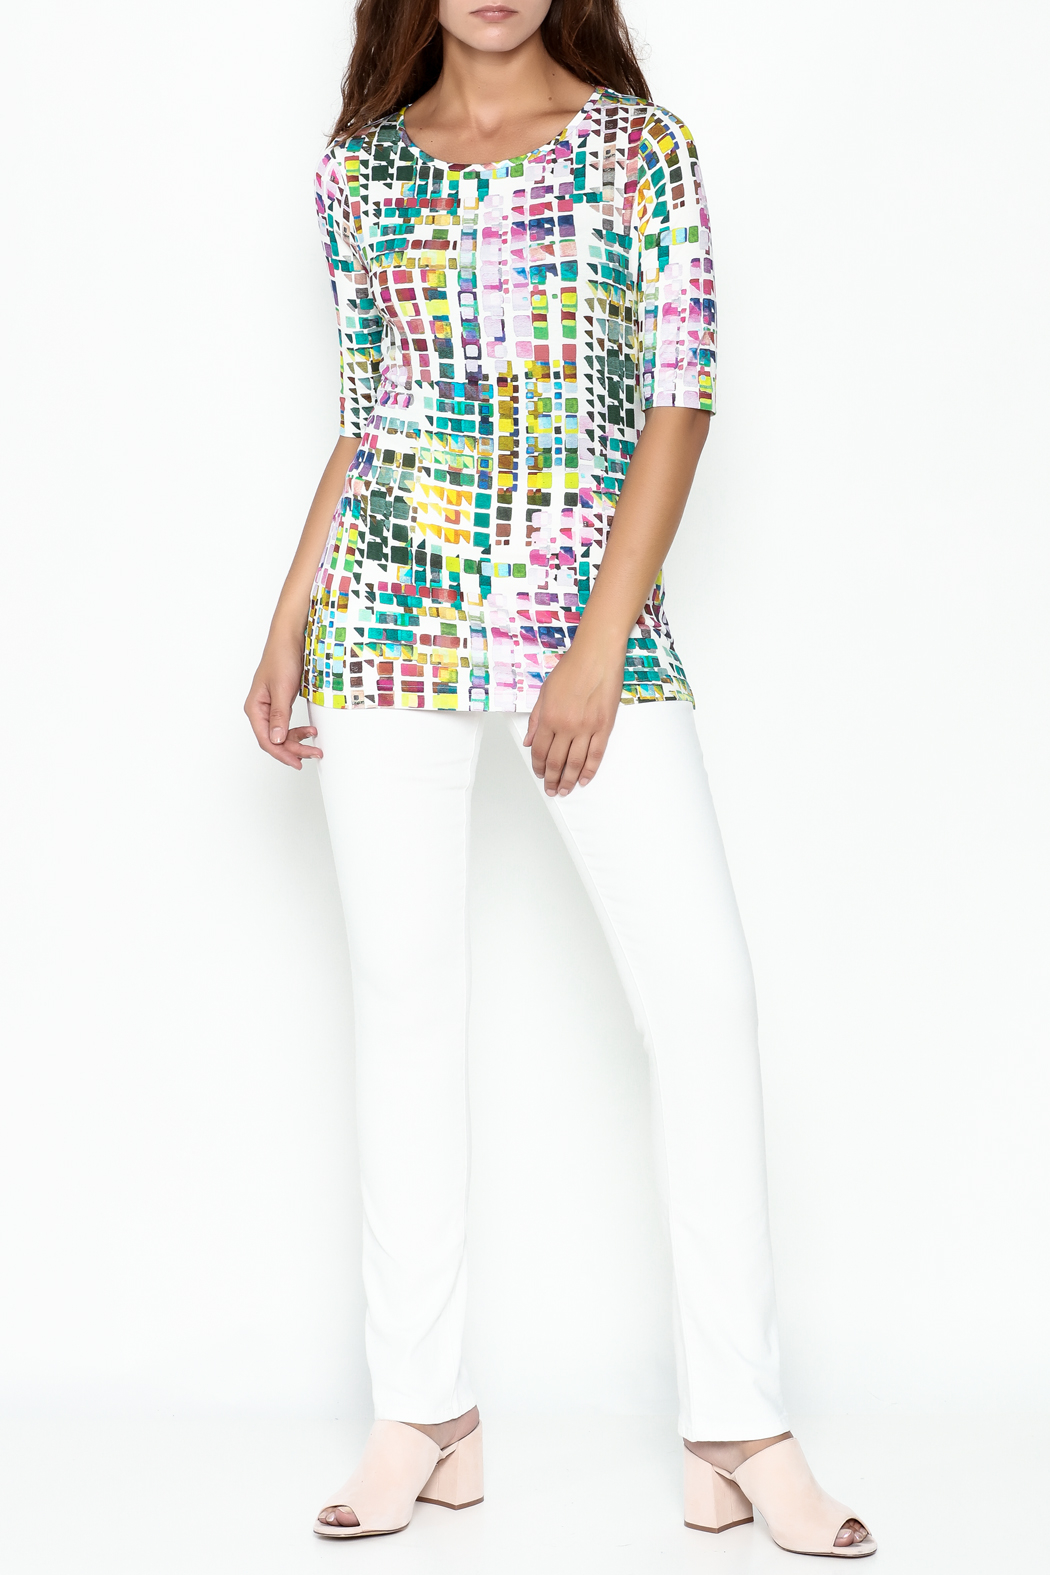 Sno Skins Mosaic Print Top - Side Cropped Image